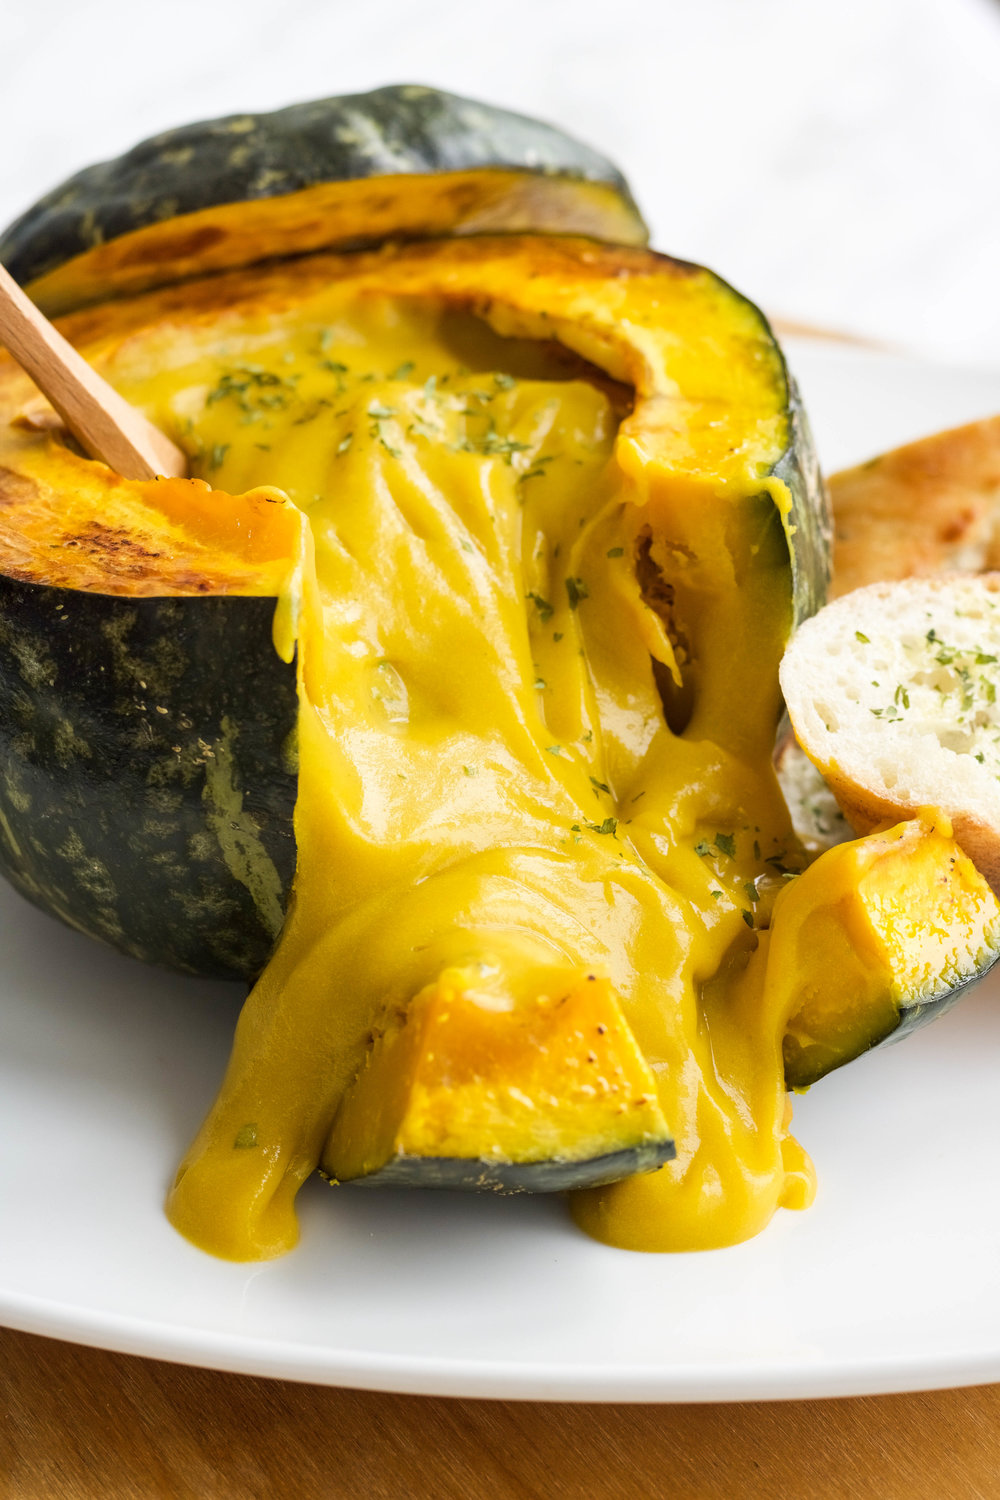 Ingredients:  1 small onion  1 med potato (around 150g)  1/2 carrot (approx 40g)  1.5 lbs kabocha squash*  2 c + 1/4c veg stock  1 c soy milk**  Optional: Additional squashed to make kabocha bowls  Method:  1. If making kabocha bowls, pre-heat oven to 350  2. Cut upper half of the squash and discard the seeds  3. Place on a baking tray and place in oven for 30 minutes  4. Chop up the onion, carrot, potato and kabocha into small pieces  5. Sautee the onions lightly  6. Add in the carrots, potatoes and kabocha and let it sautee for a few minutes  7. Add in the veggie broth and let it come to a boil and then reduce to a simmer for approx 40 minutes or until you can mash the potatoes and kabocha with a fork  8. Remove from heat and let it cool  9. Once slightly cooled, transfer to a blender and add soy milk  10. Pour it into the kabocha bowls and serve with toasted garlic baguettes!      Notes:  1. Buttercup squash may be substituted   2. Add more for a thinner consistency!